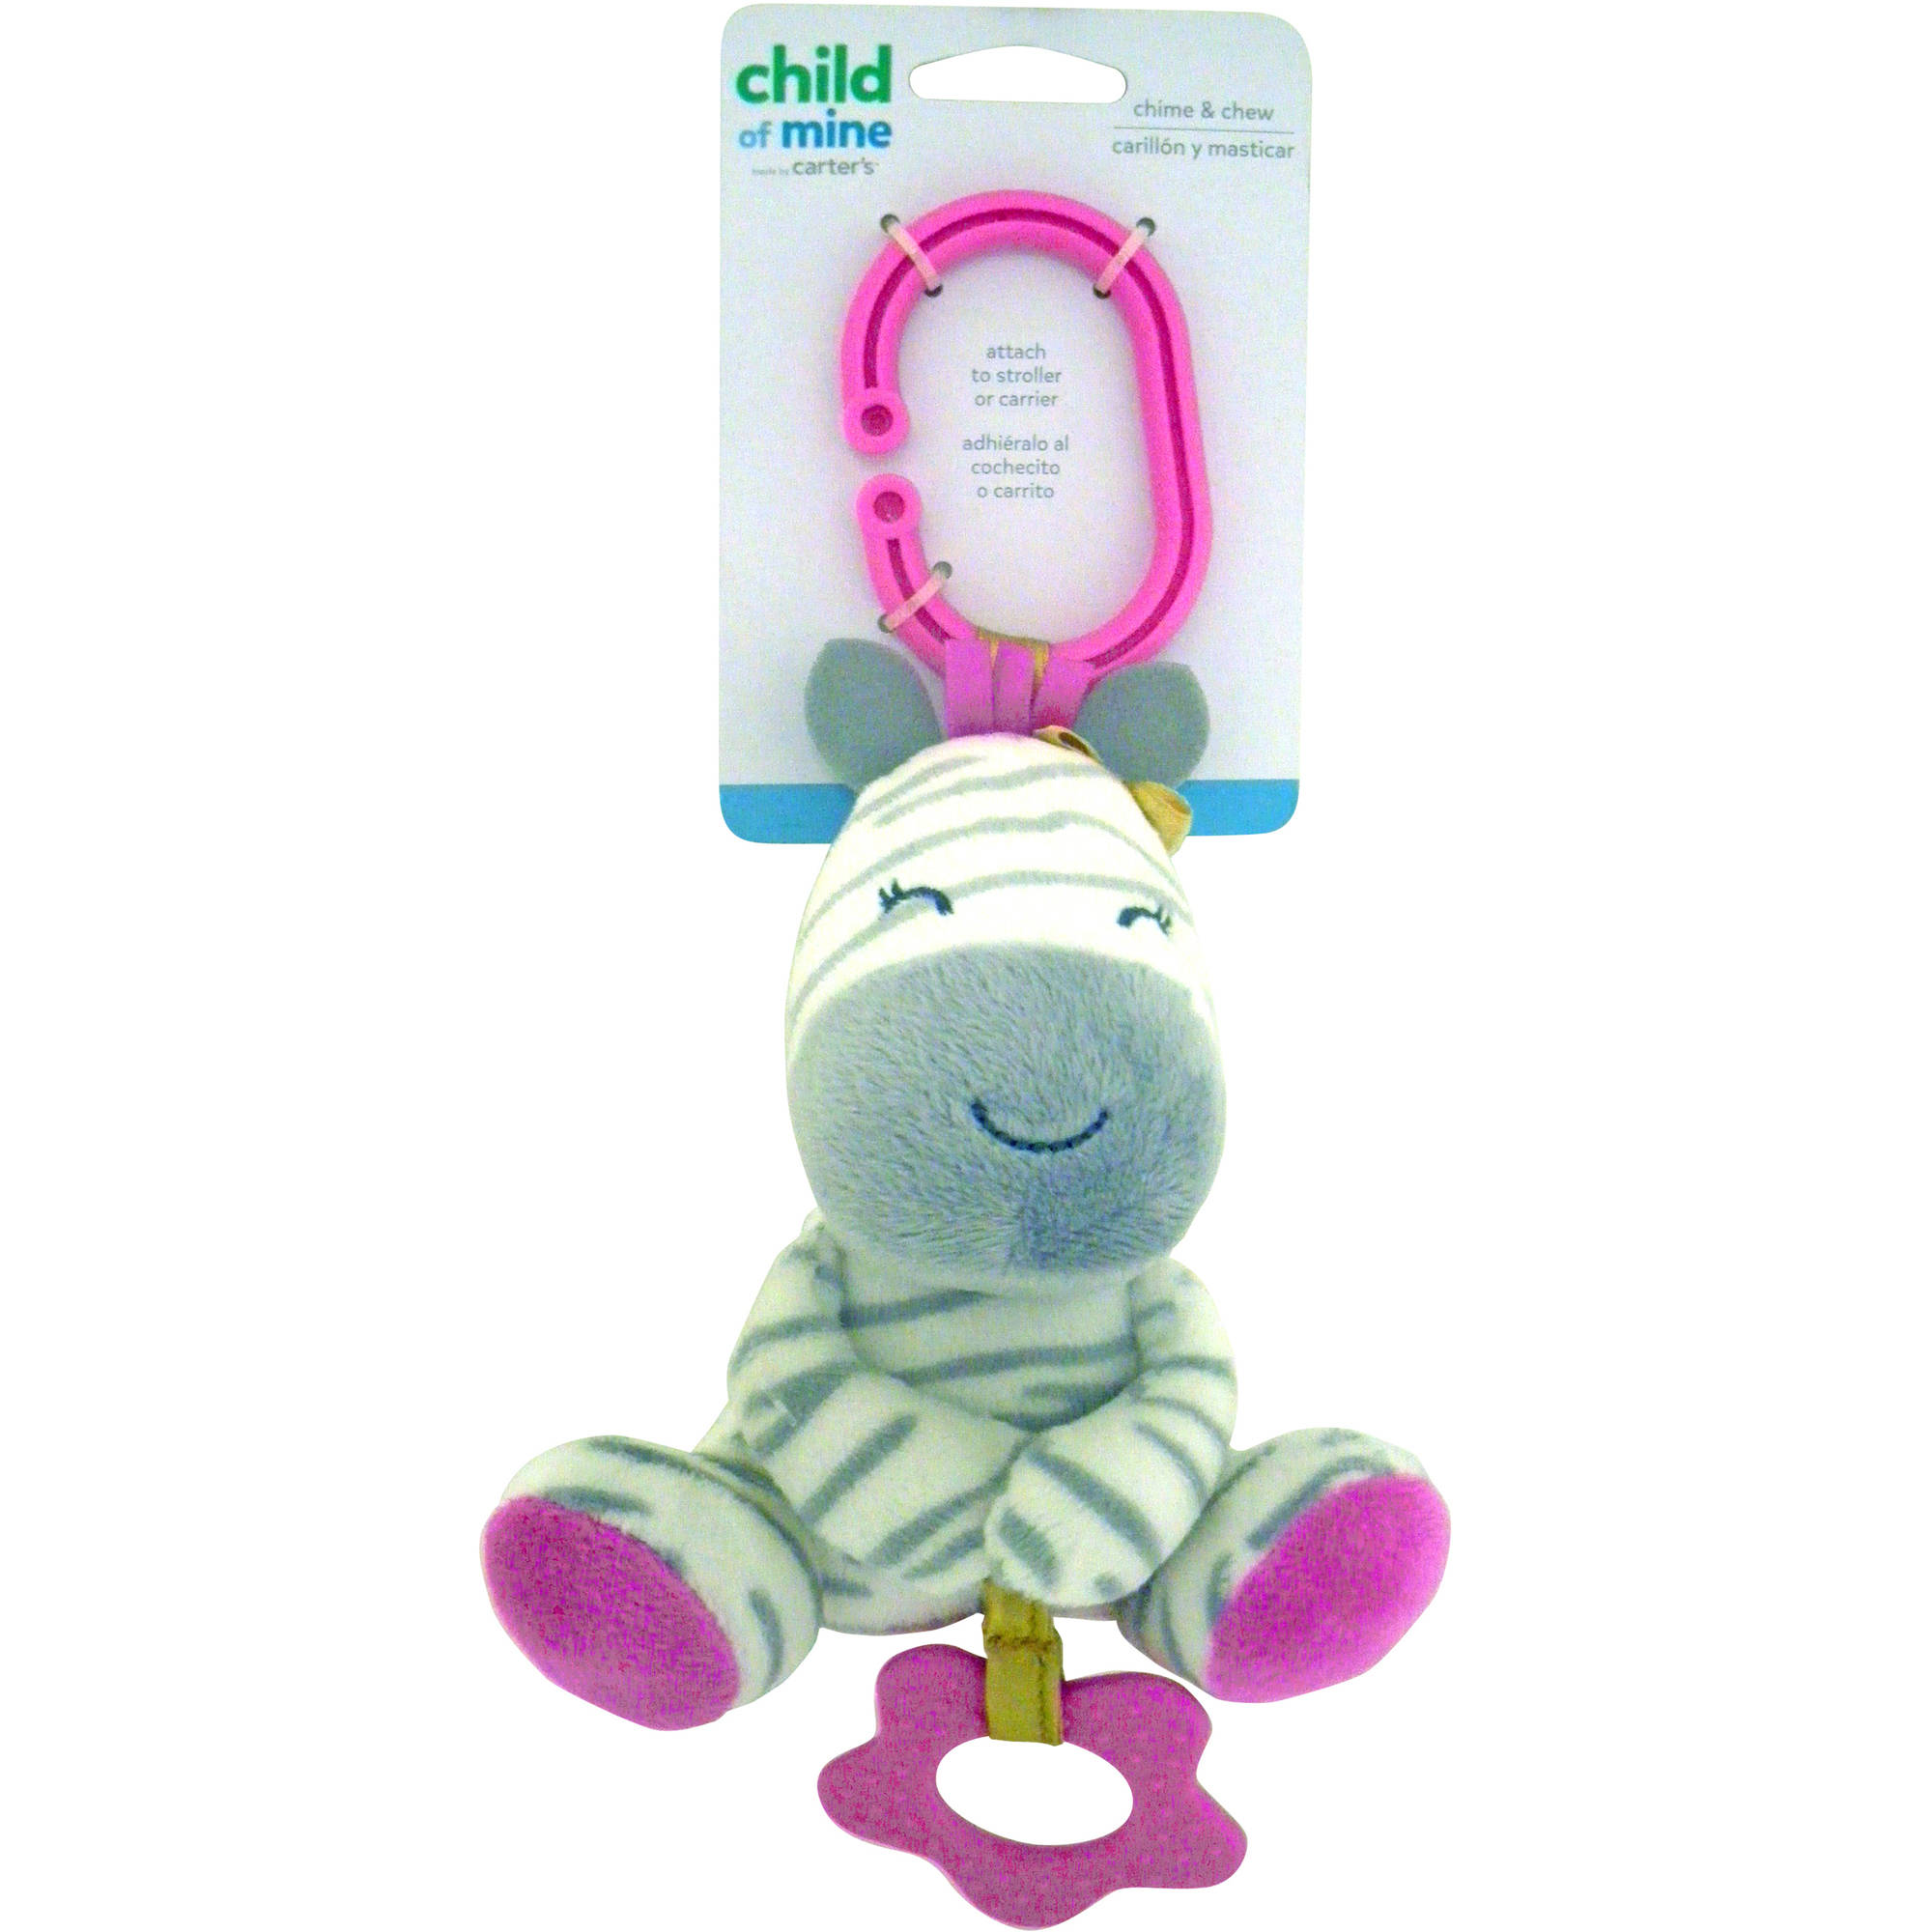 Carter's Girl Zebra Chime and Chew